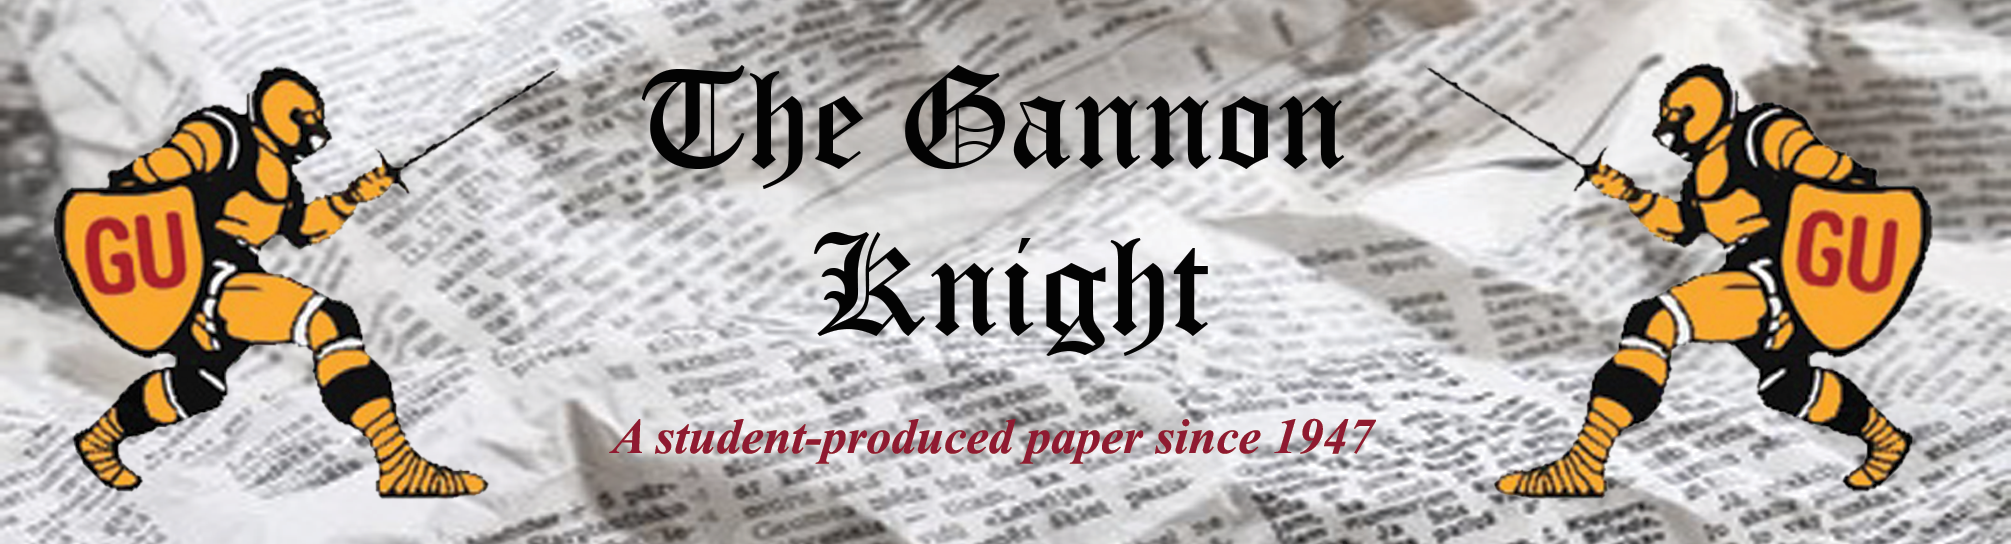 The Gannon Knight